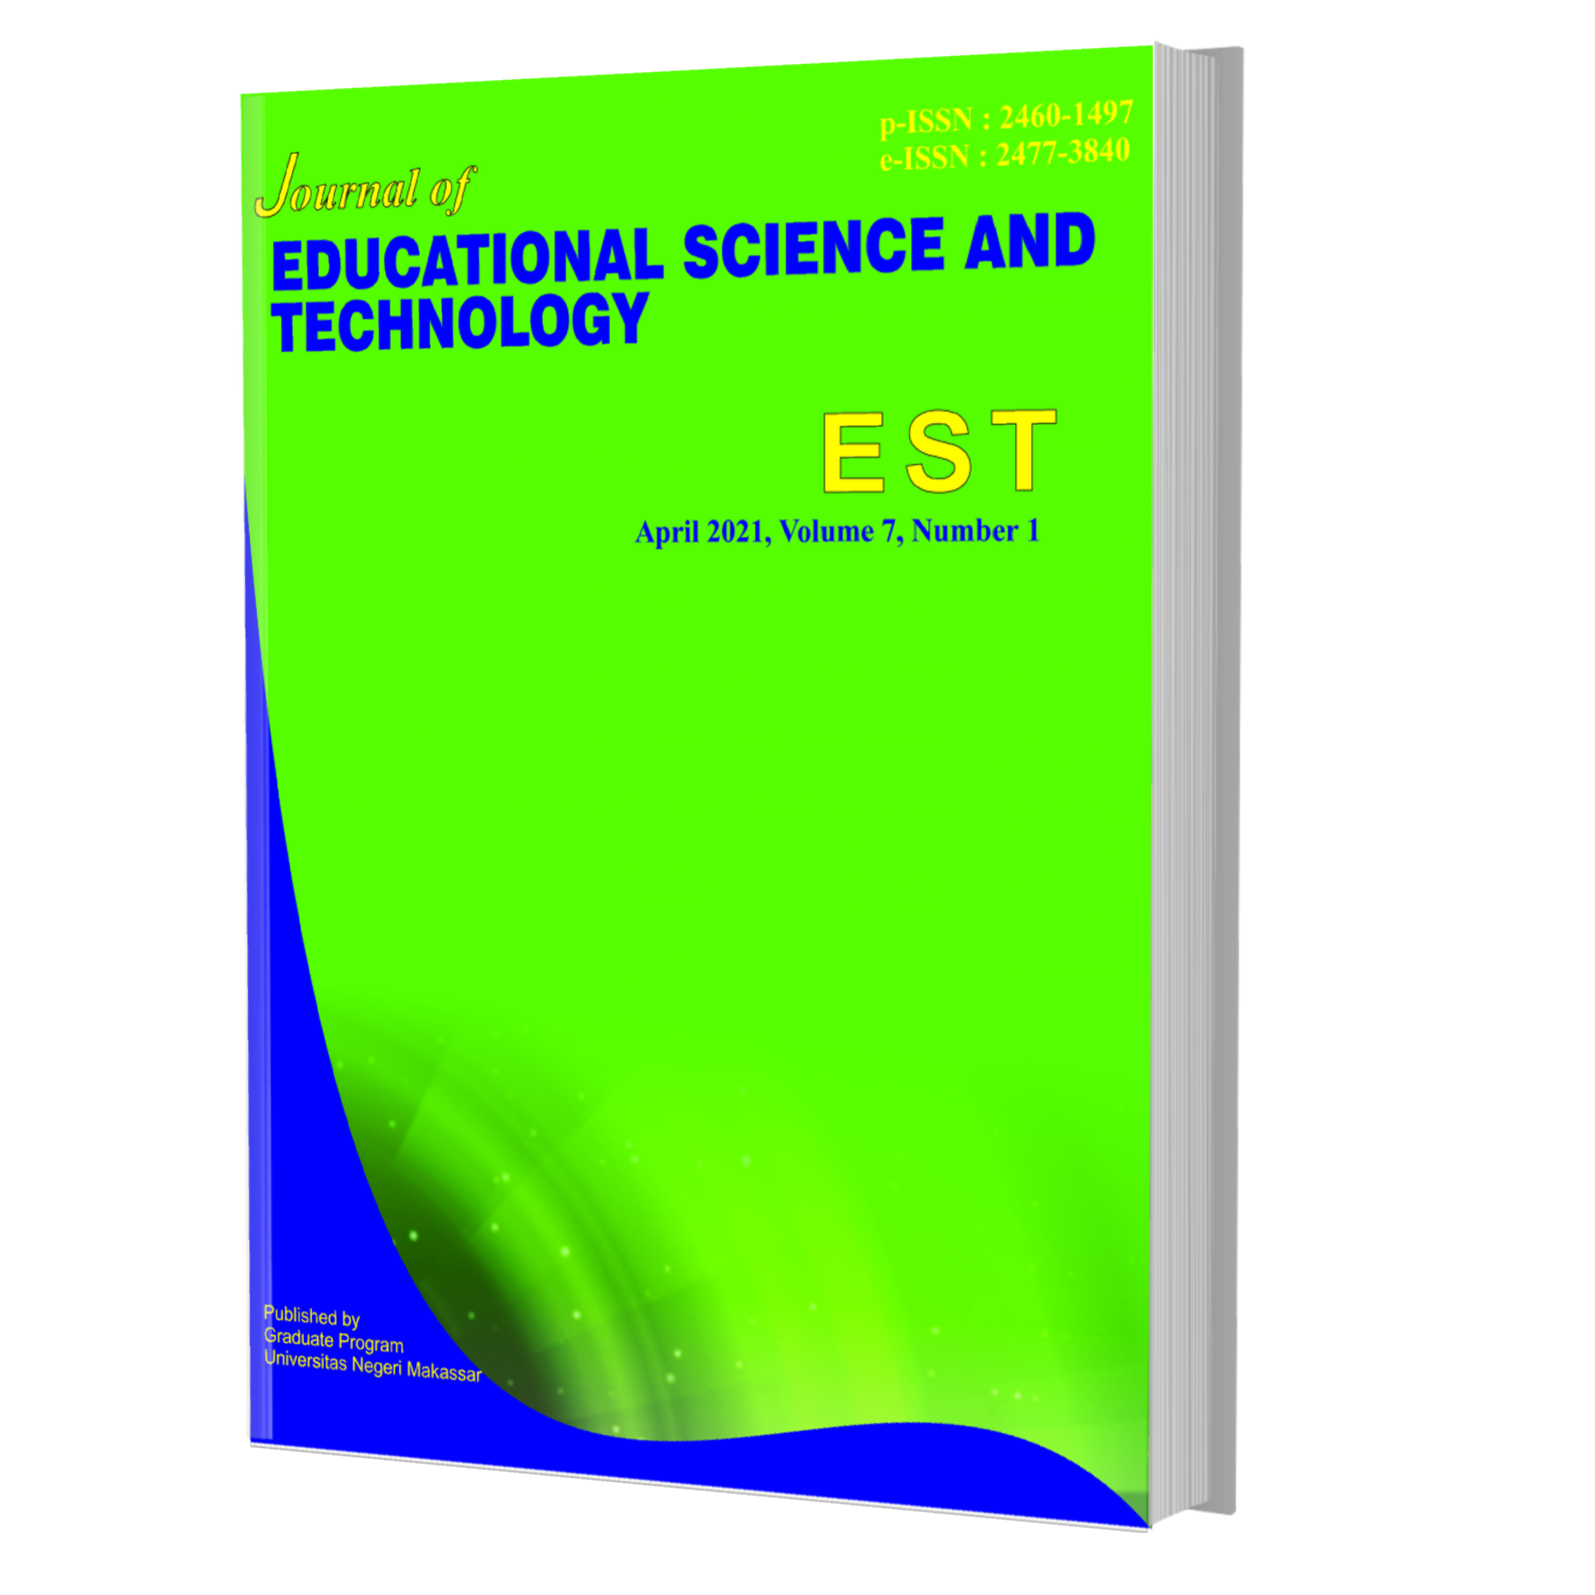 Journal Of Educational Science And Technology Est